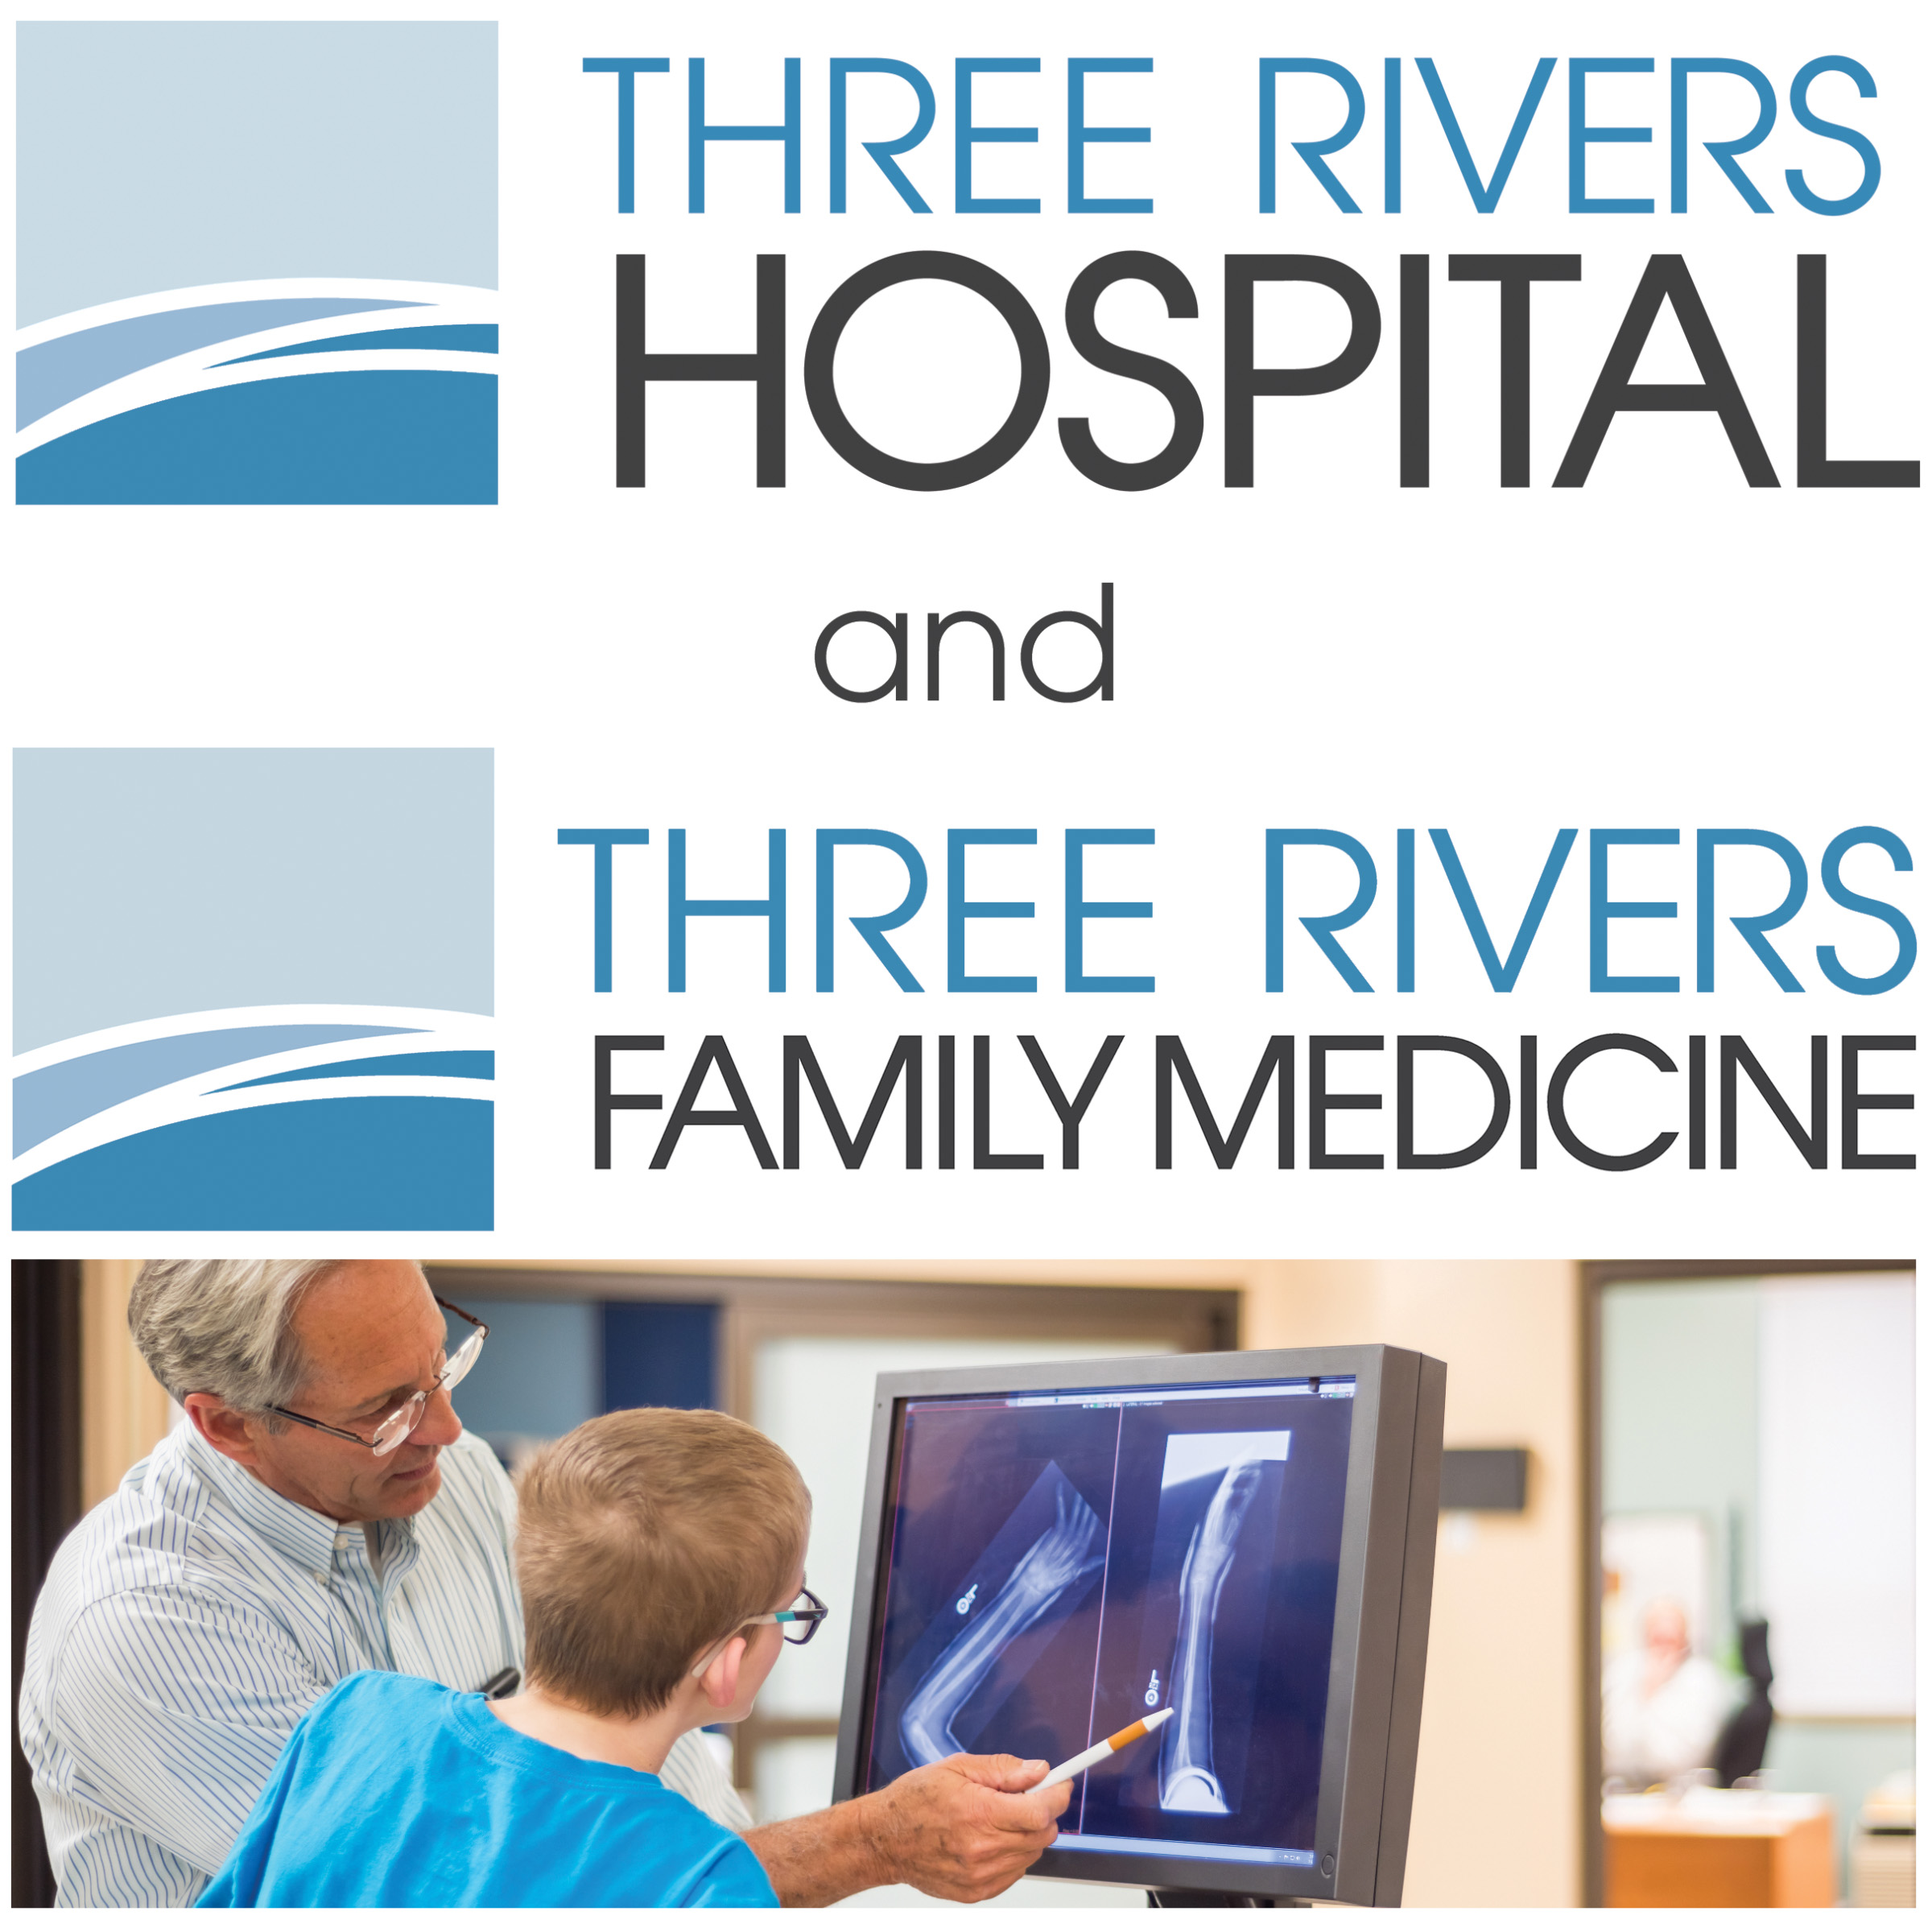 three rivers hospital - 507 Hospital Way, Brewster, WA 98812www.threerivershospital.netwww.brewsterclinic.orgFacebook509-689-2517Full service critical access hospital with Primary Care and Surgical Specialty Clinic.